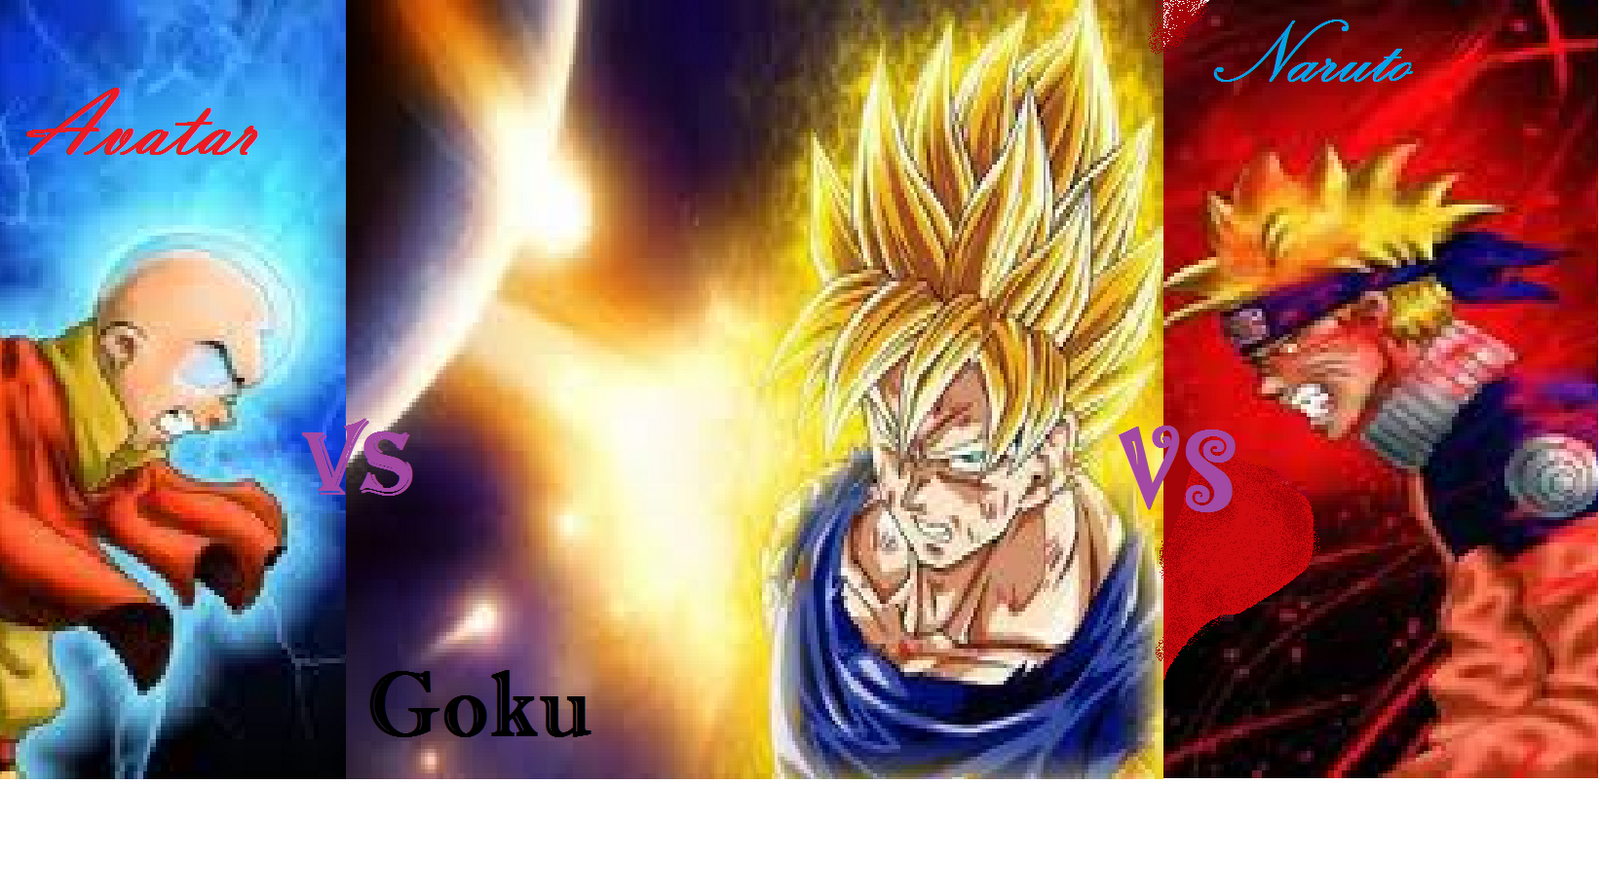 Naruto Vs Avatar Vs GokuNaruto Vs Avatar